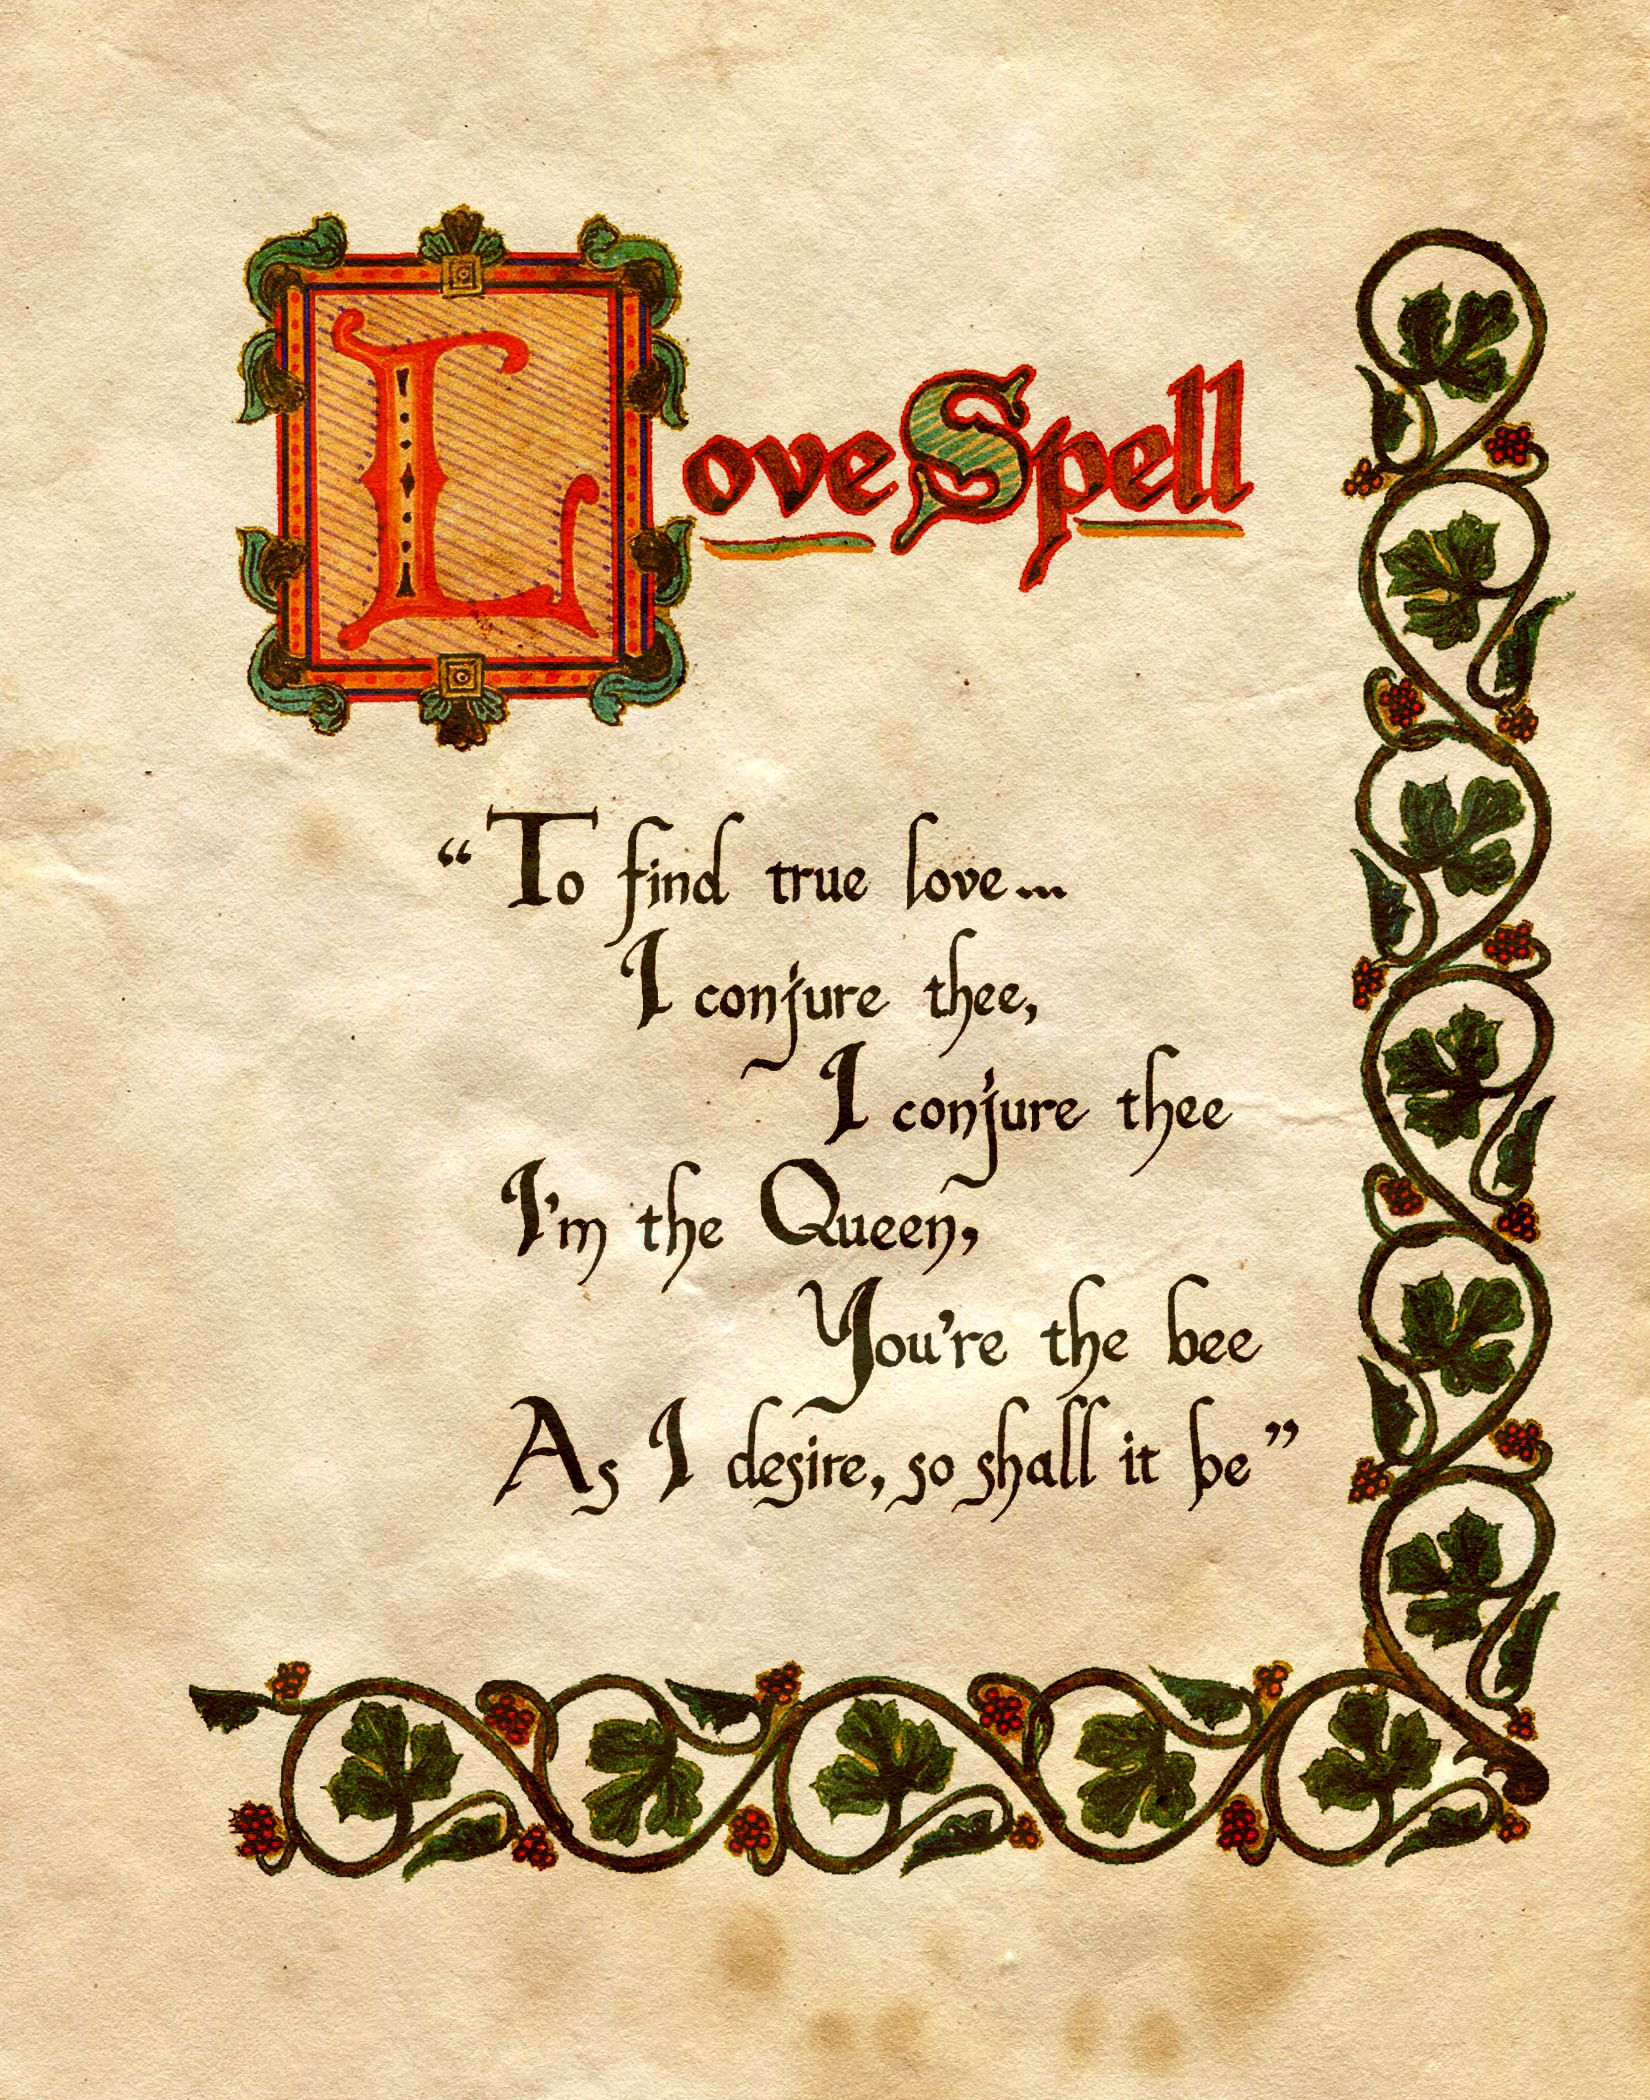 Pin by Nae Nae on Witchcraft | Charmed book of shadows, Witch spell